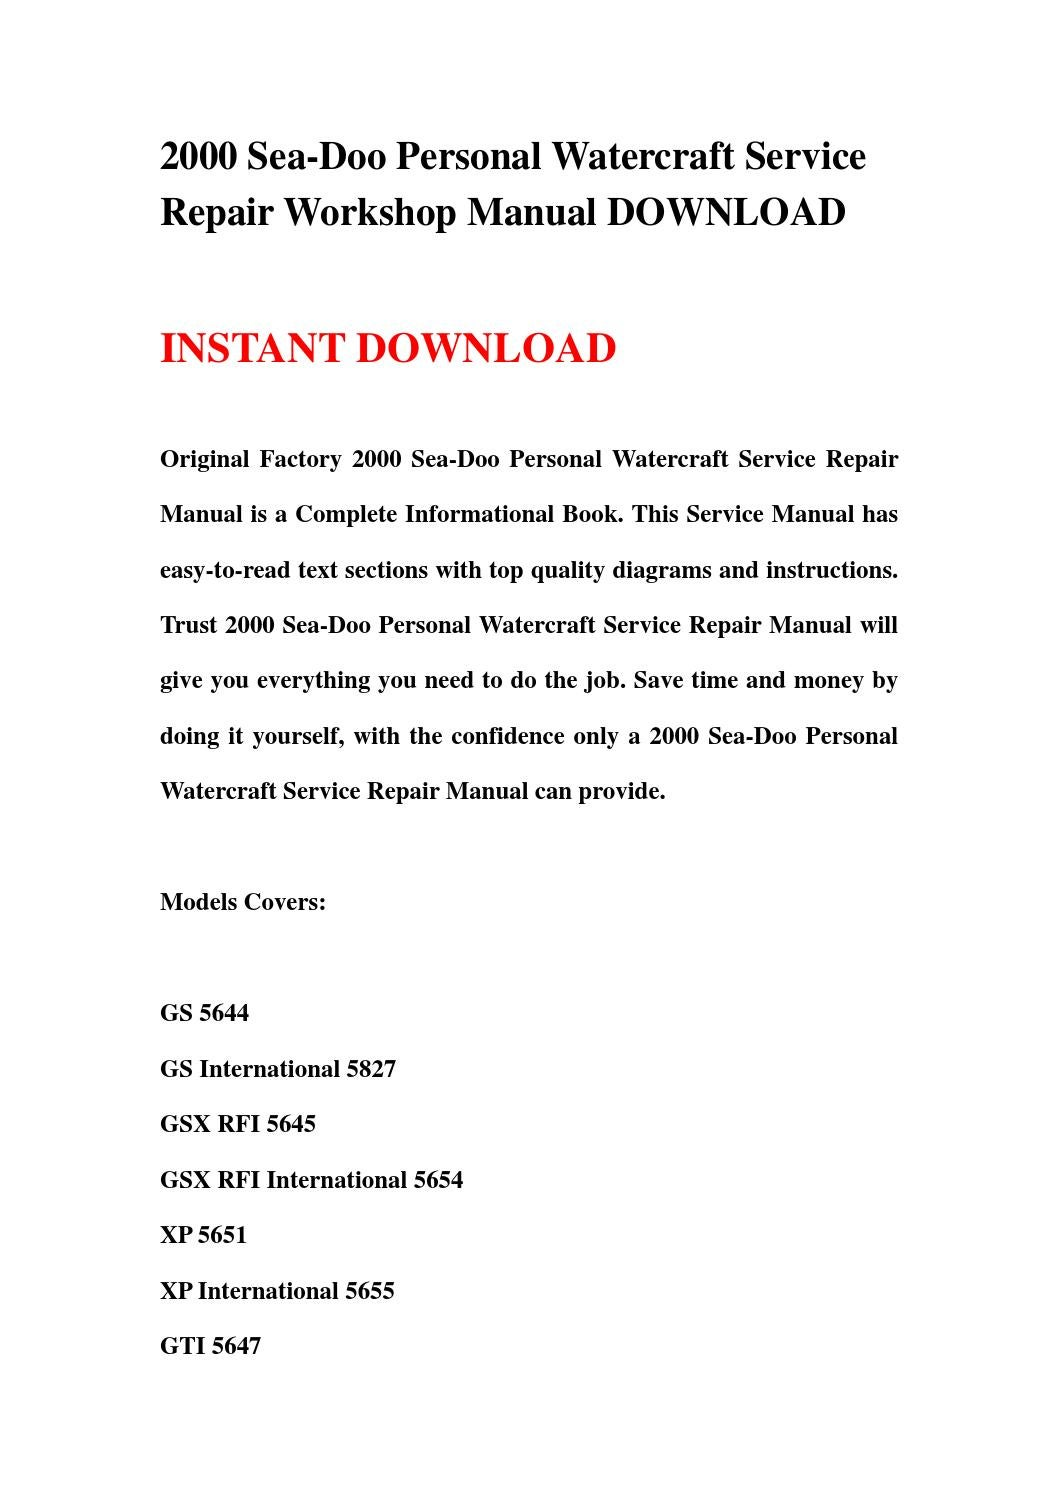 2000 sea doo personal watercraft service repair workshop manual download by  qiguo - issuu